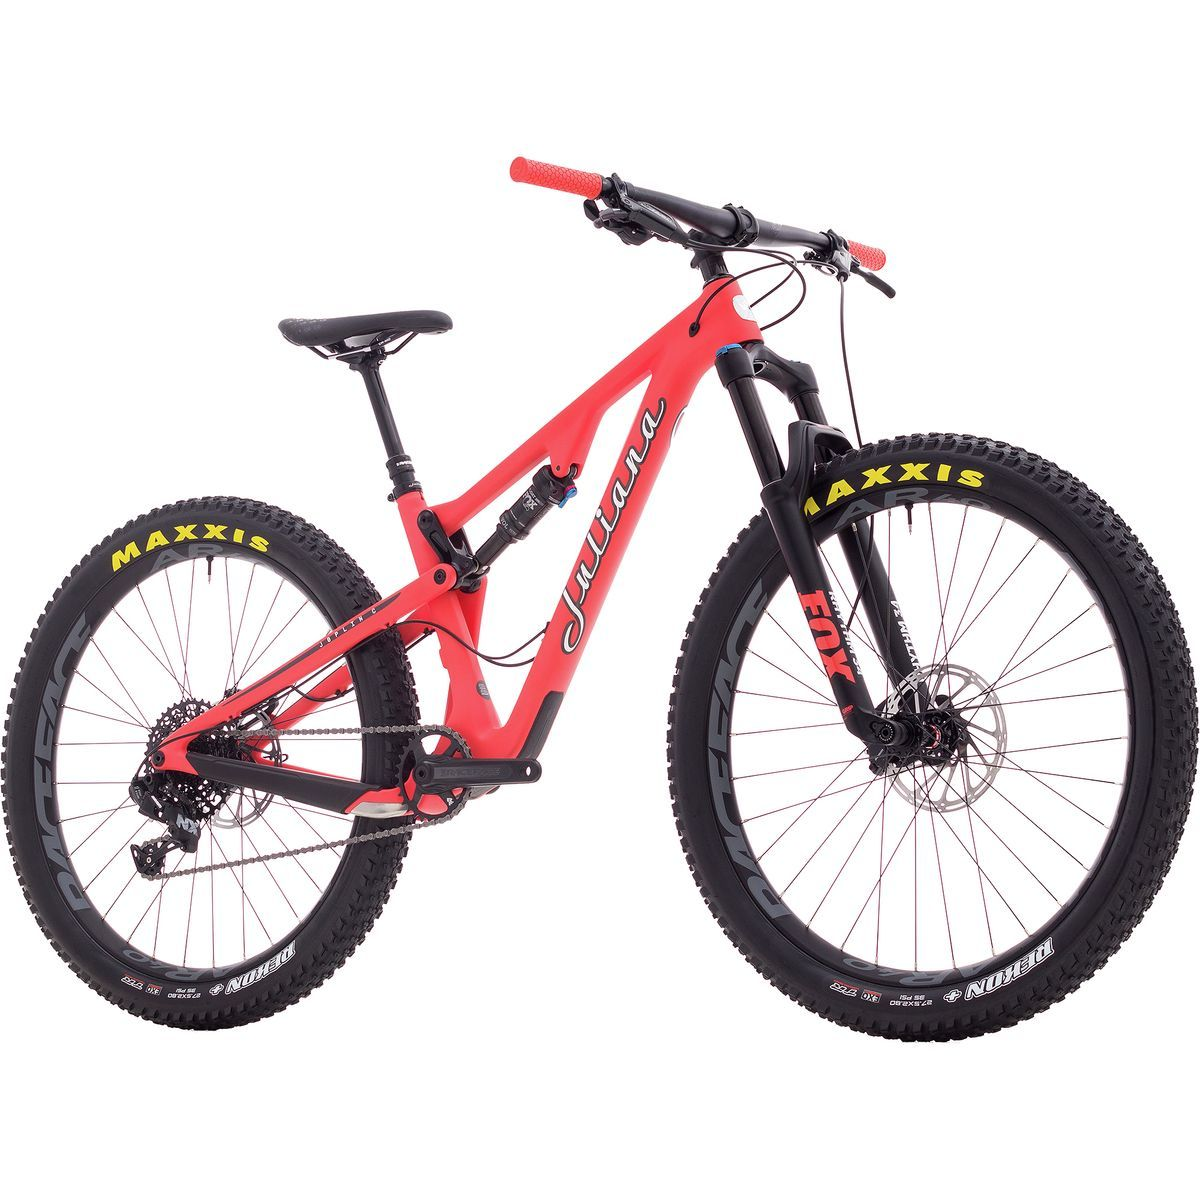 Mountain Bikes Buy Mountain Bikes Online Mountain Bikes Walmart